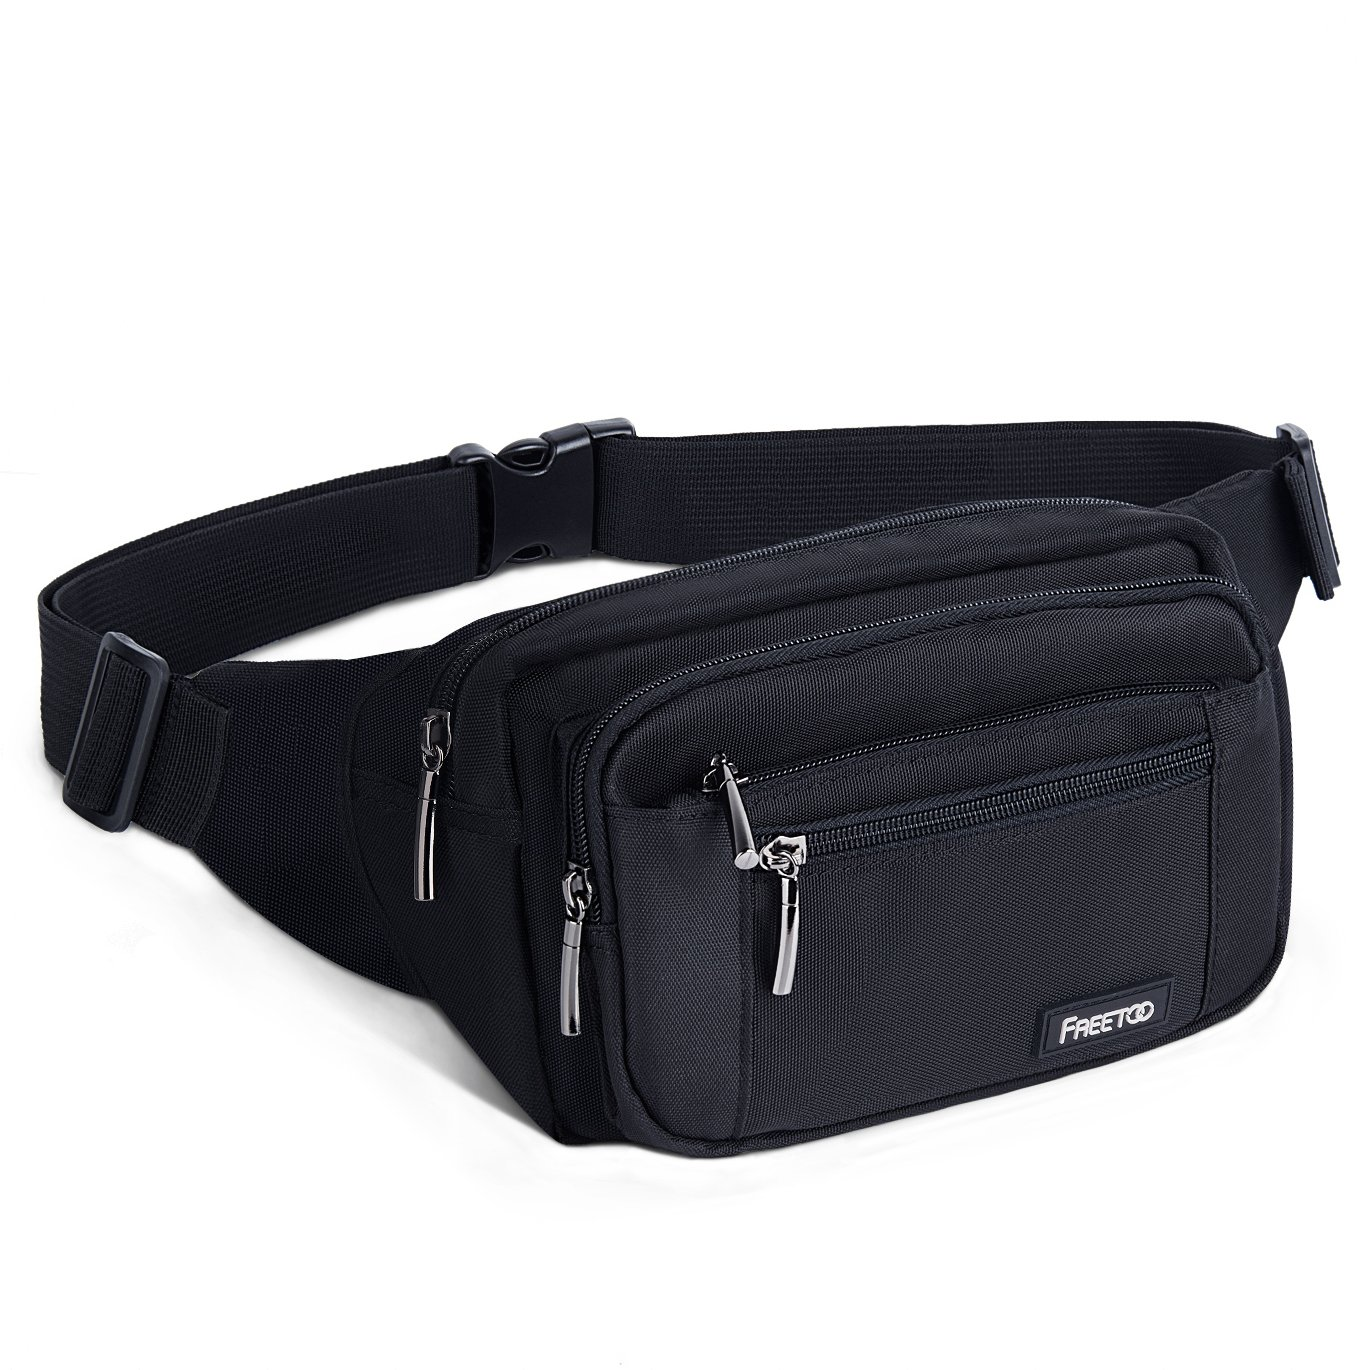 FREETOO Large Bum Bag 32.7 to 45.3 Inch Size Waist Travel Pouch Fanny Pack with 6 Zipped Pockets Ideal For Hiking Travel Holidays Festivals